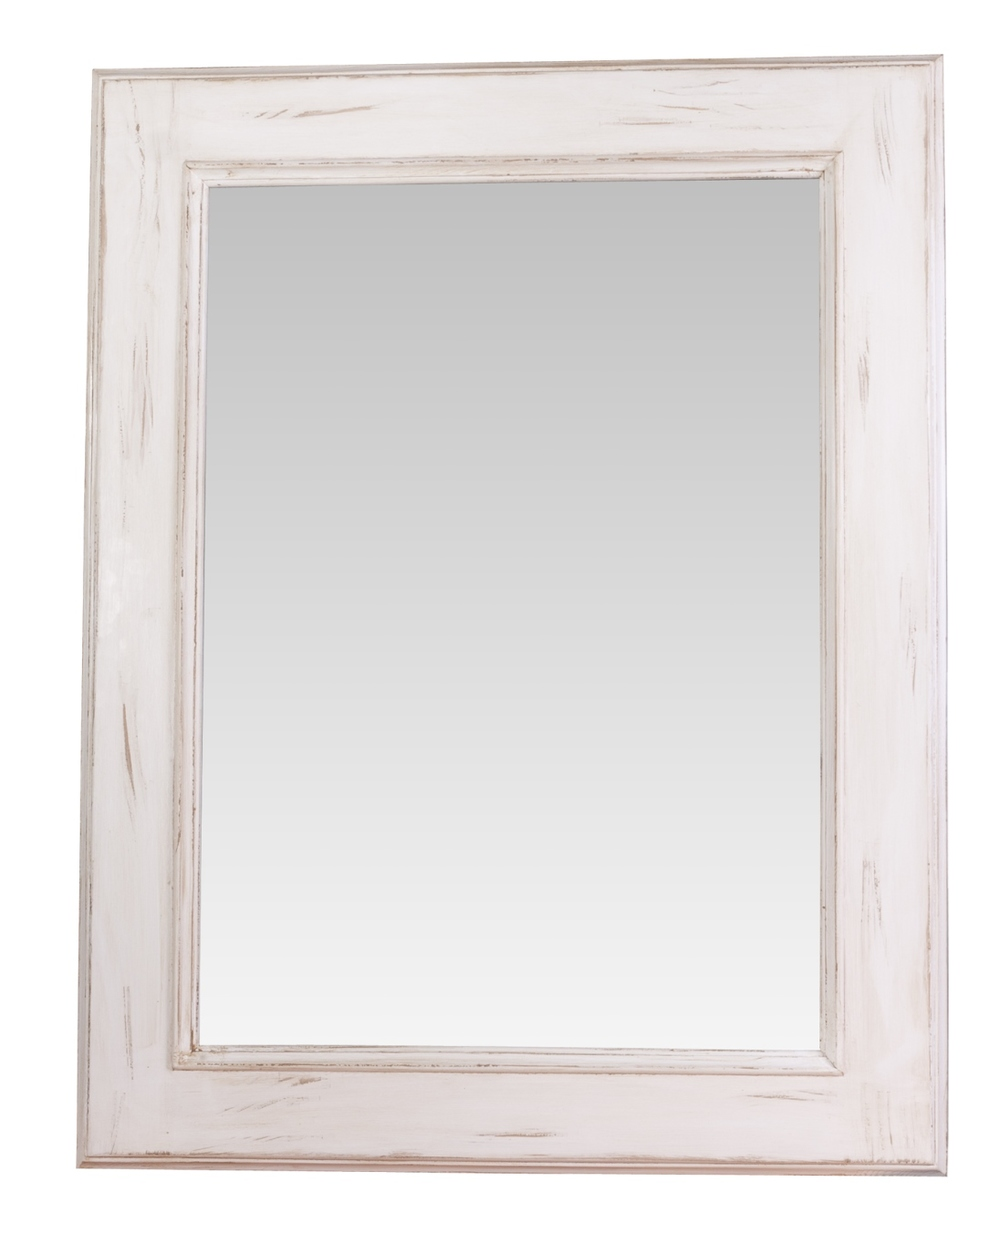 HERITAGE FRENCH LINE MIRROR  w 78 x d 3 x h 100 cm  € 265 ( 30% Off, Now € 185.50 )  Product Code: FL-7008  This piece may be ordered in any of the Heritage colours and finishes.